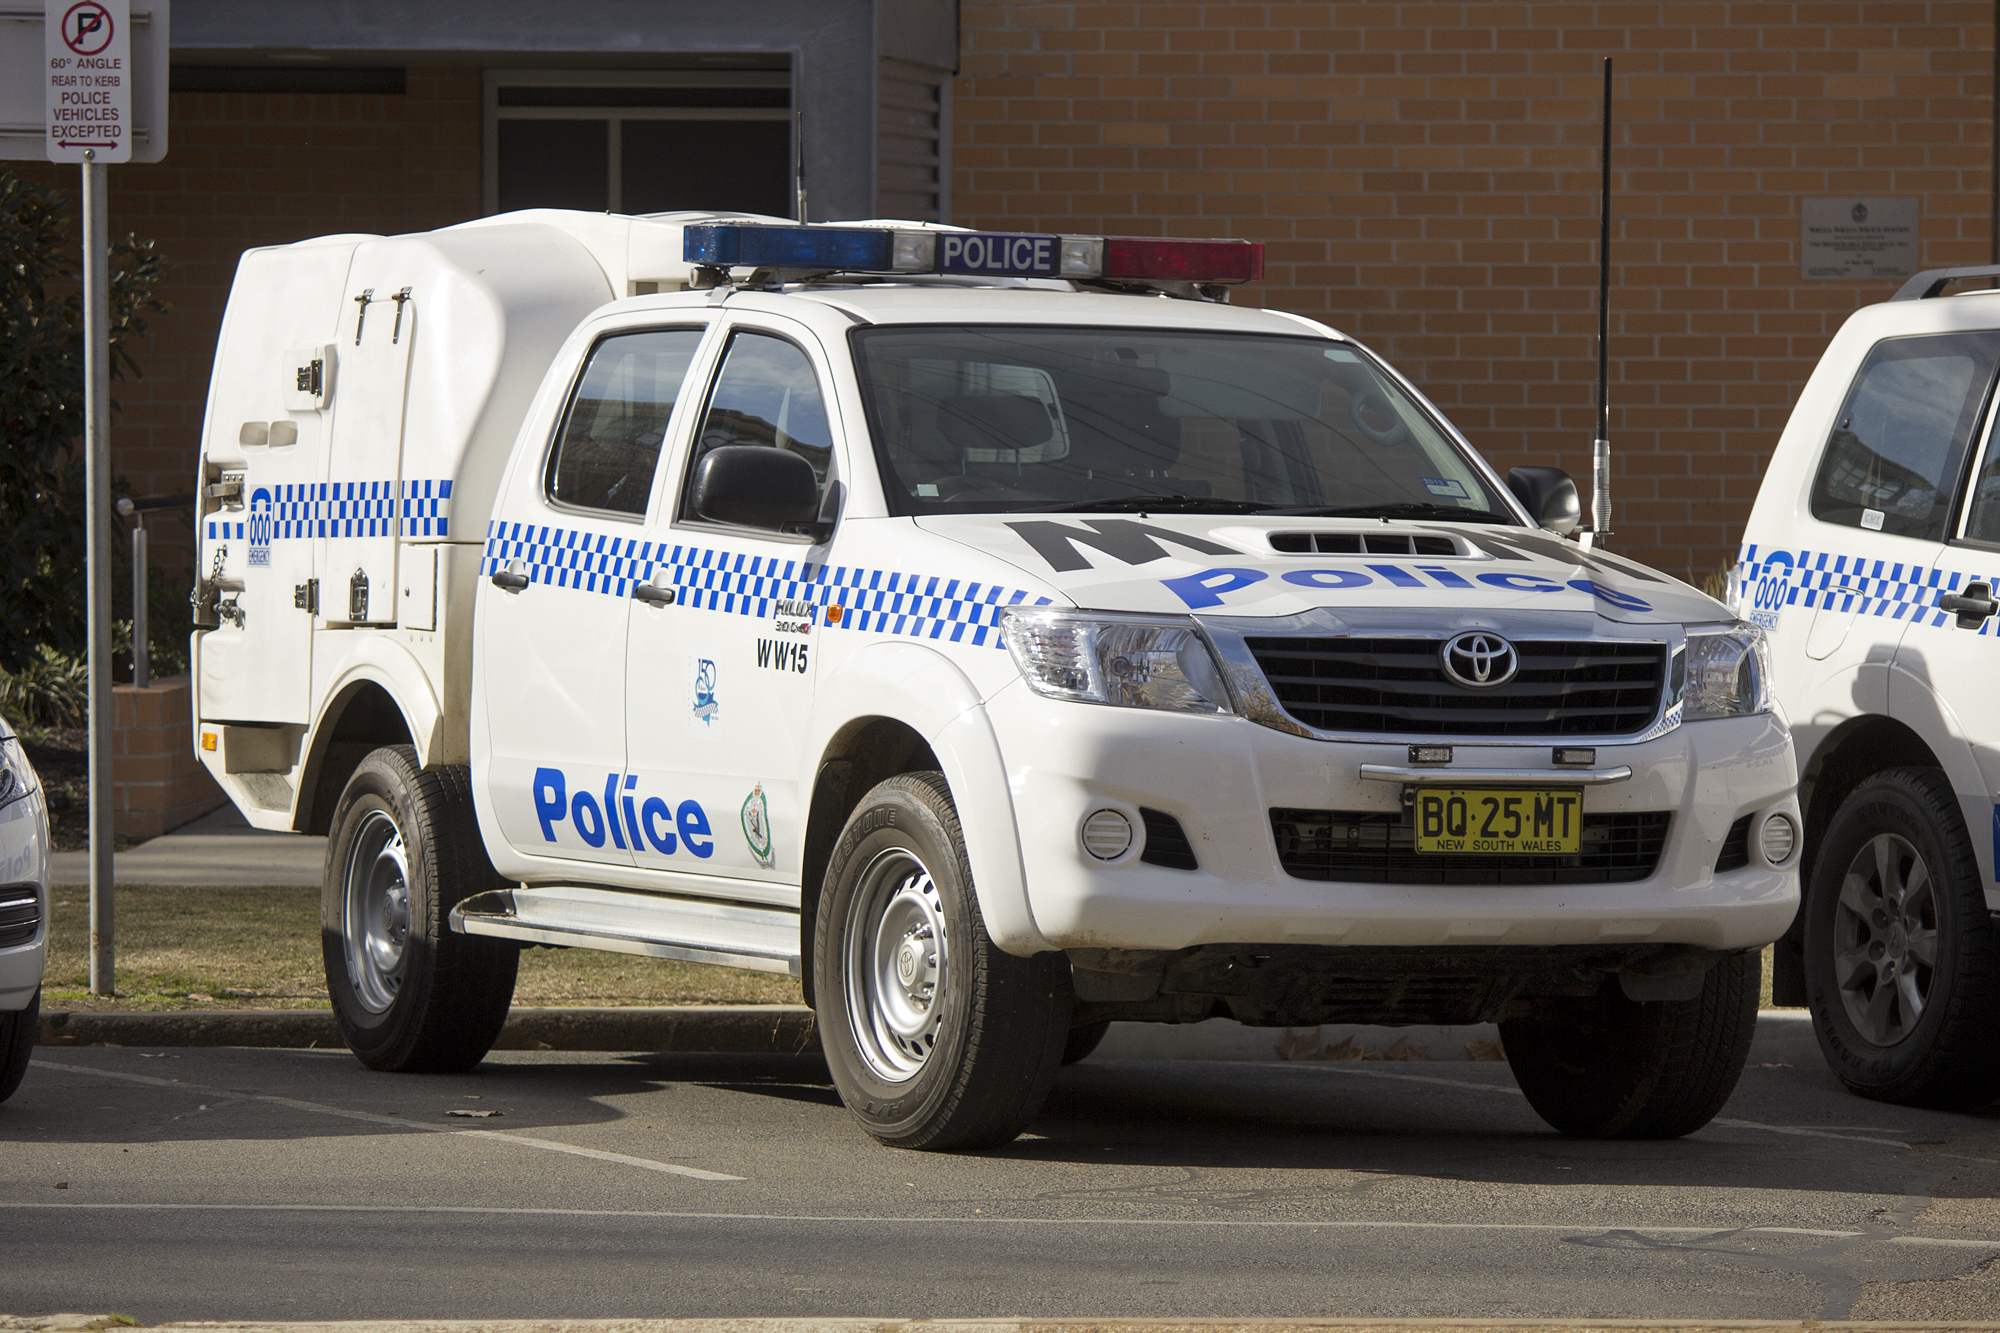 File:NSWPF Wagga Wagga (WW15) Toyota Hilux at the front of Wagga